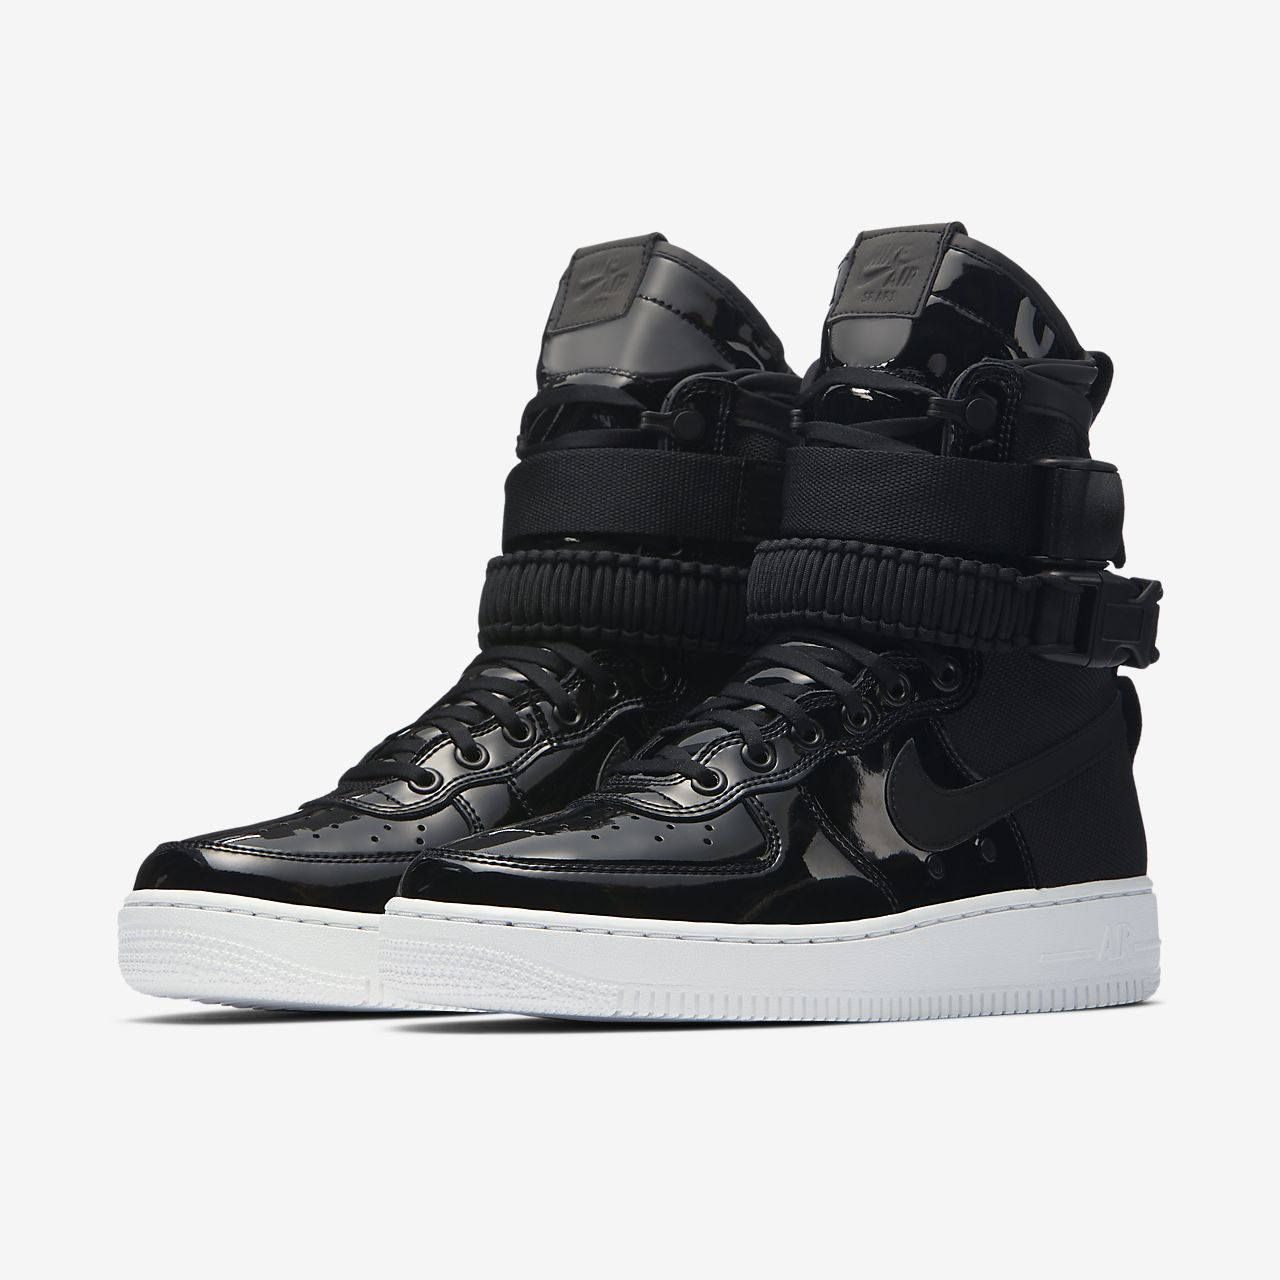 sf air force 1 nere